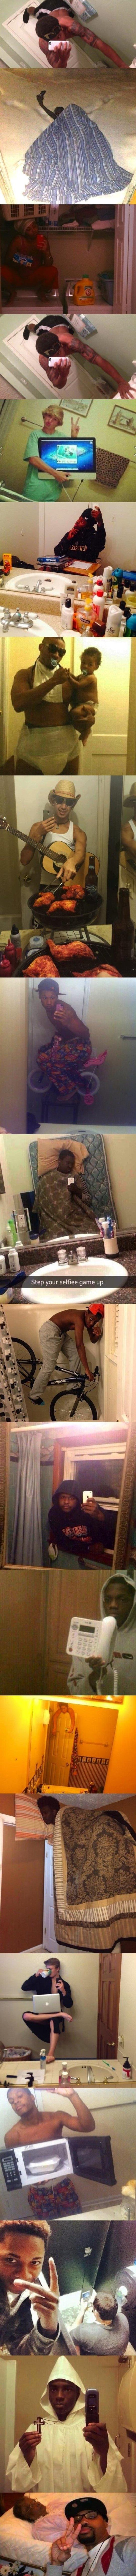 Best Selfies Ever